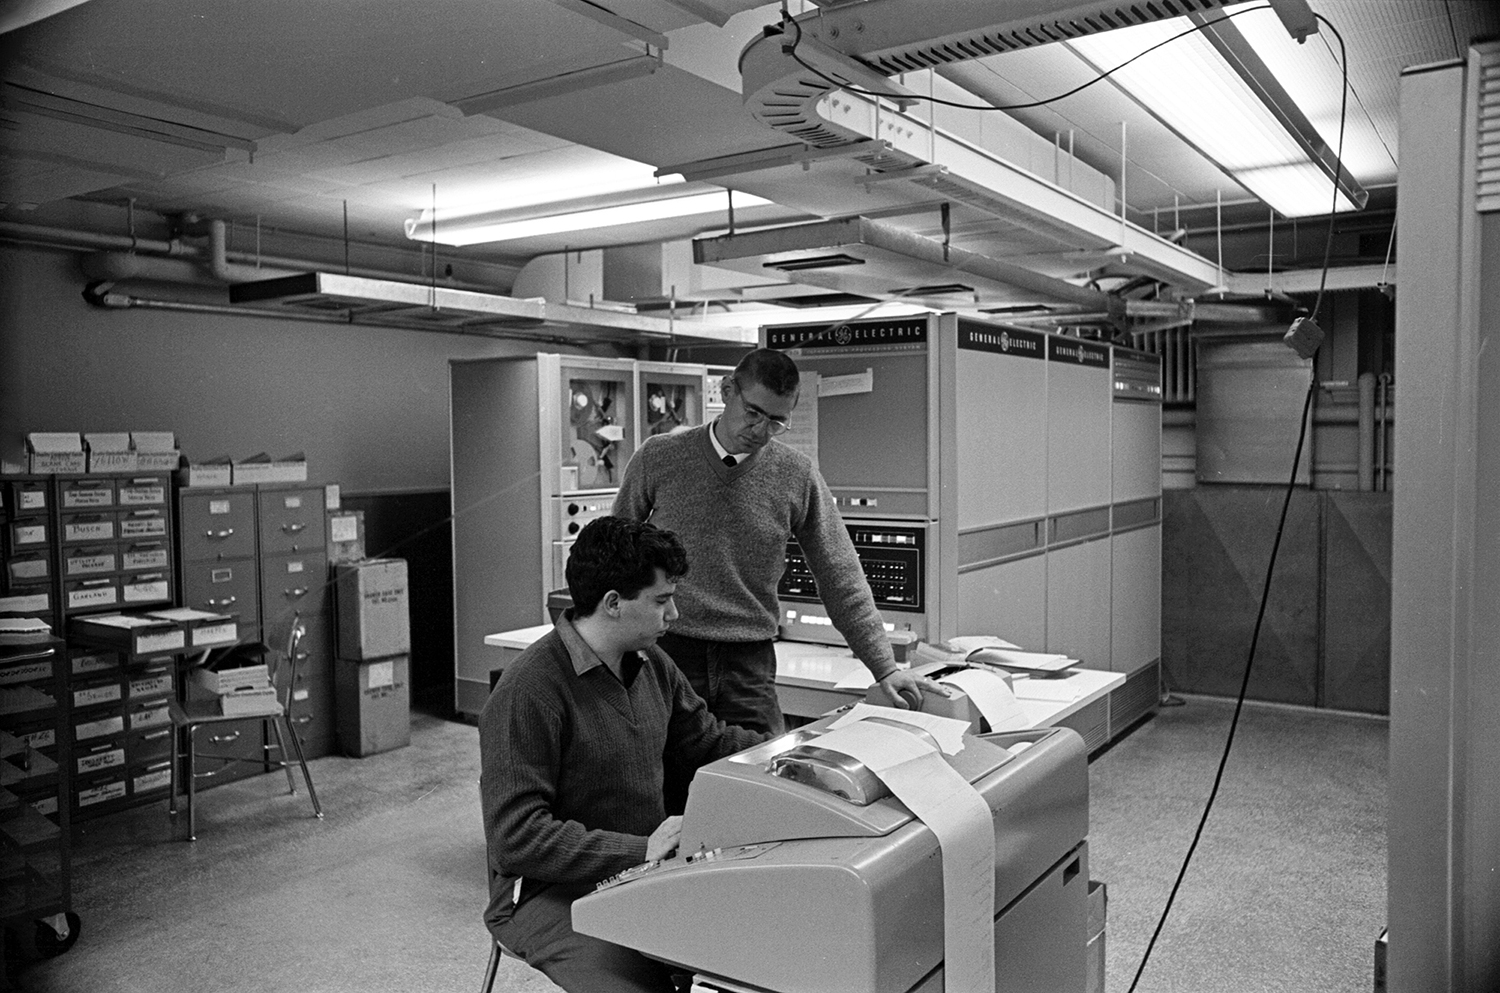 Tom Kurtz (standing) works with Michael Busch, co-programmer of the DTSS, with the GE-225 mainframe in the background